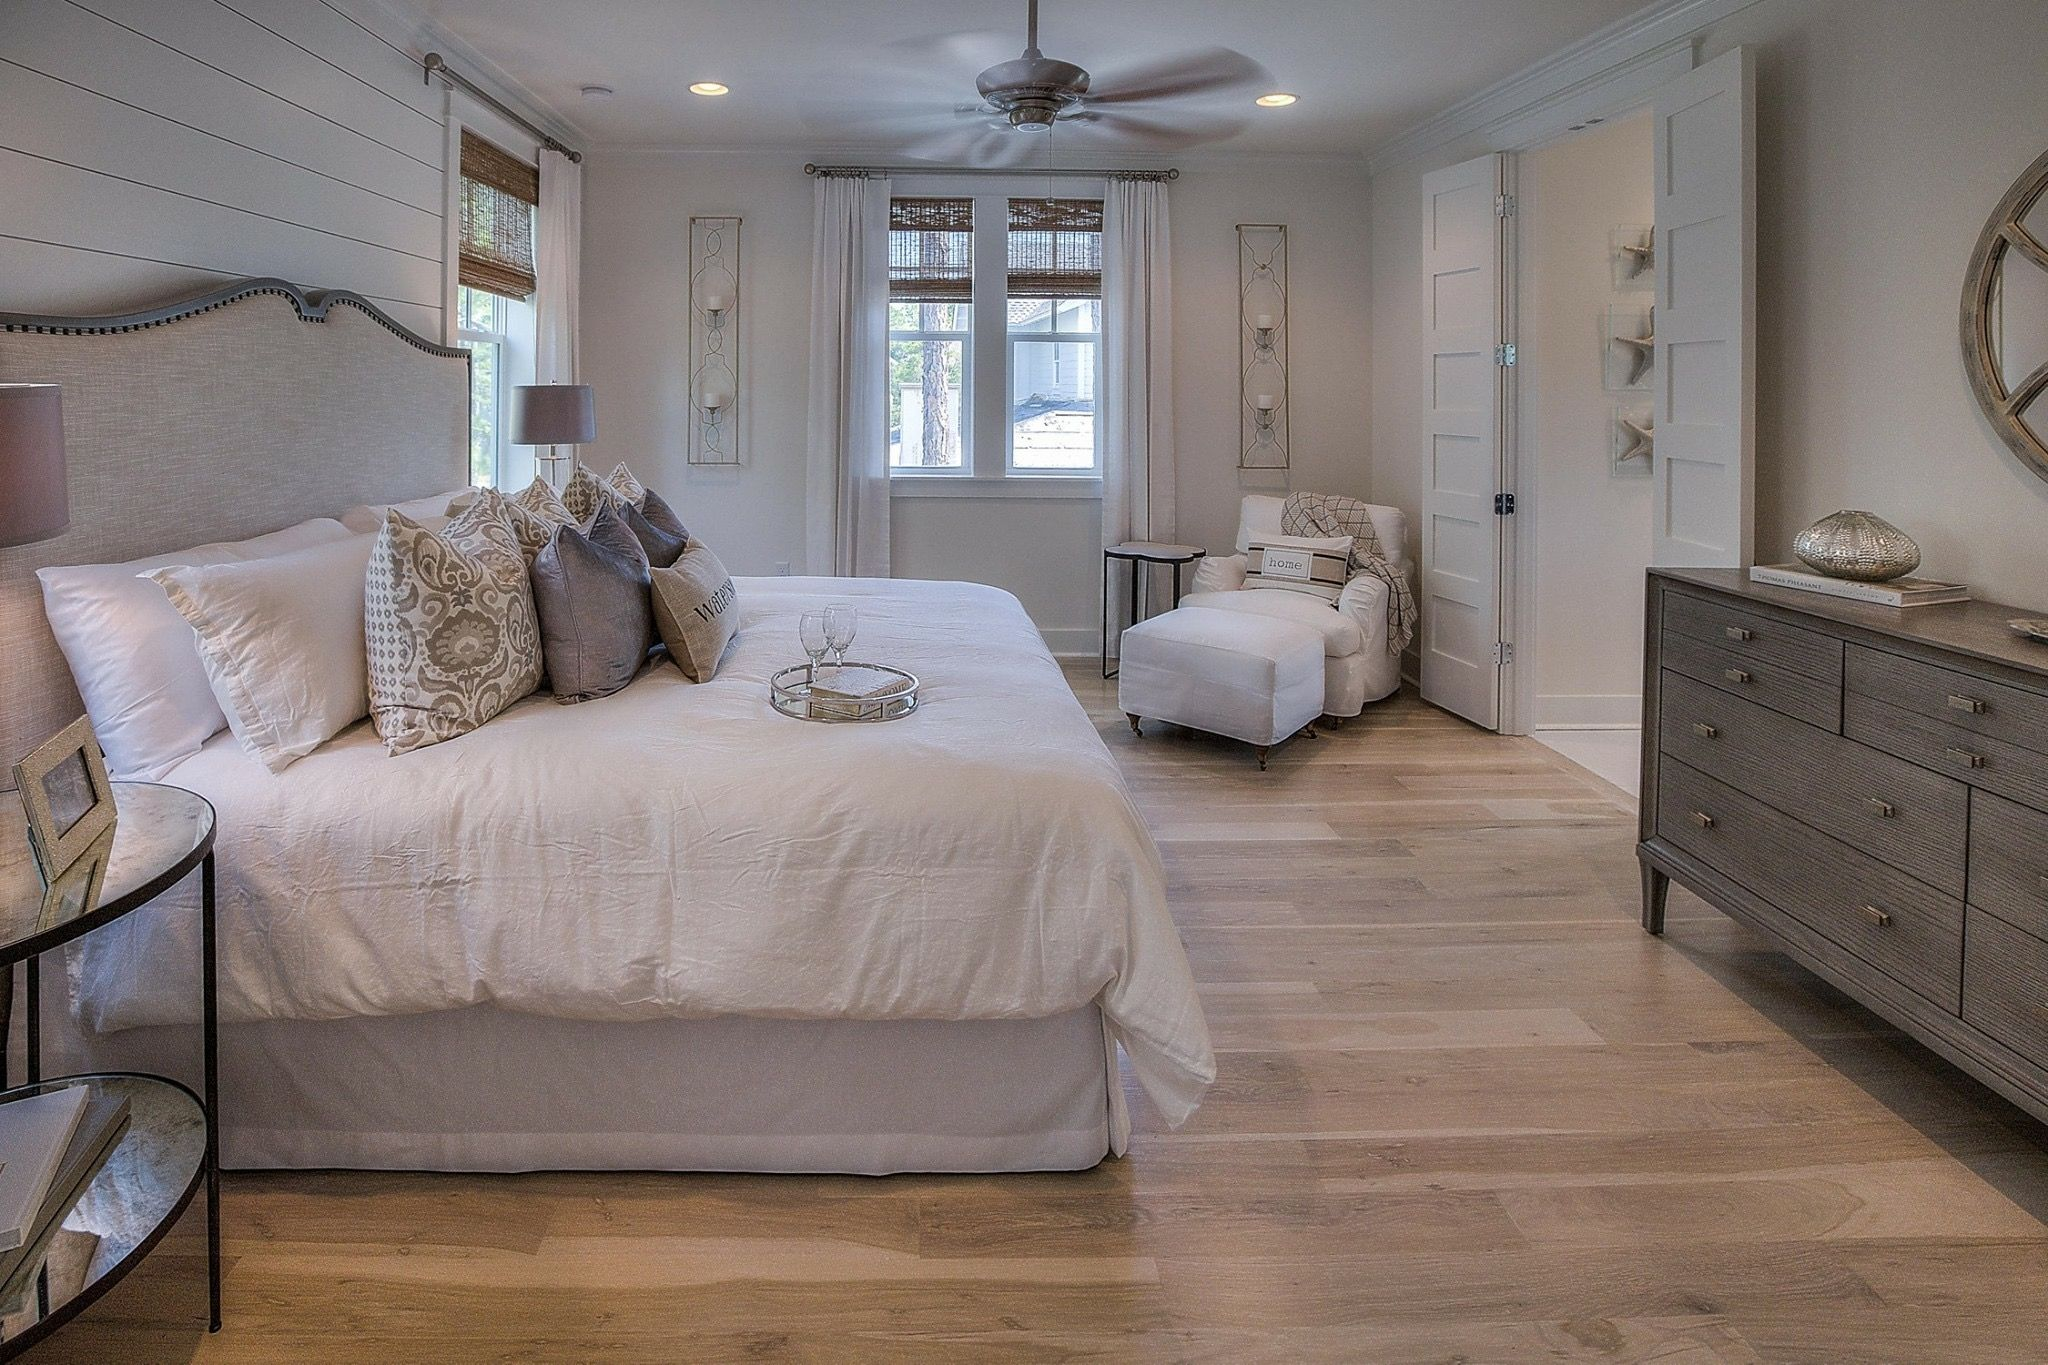 Master bedroom hardwood floors  Pin by Cynthia Webb on Bedrooms in   Pinterest  Bedrooms and